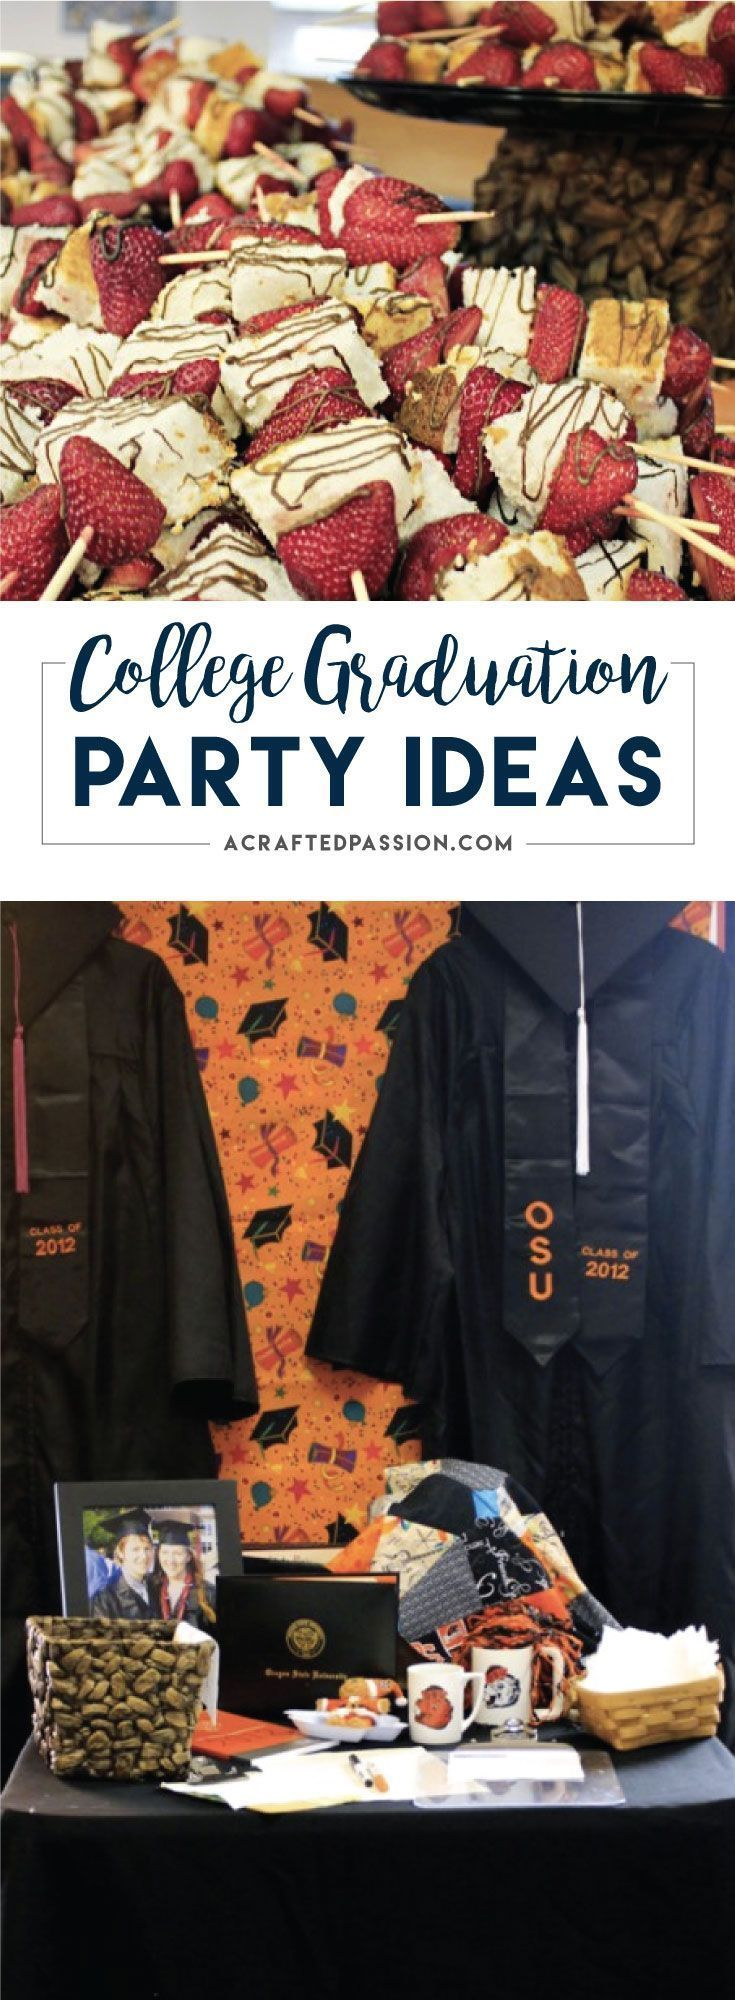 Love these ideas! Check this out for many creative college graduation party ideas full of DIY projects and graduation party dessert ideas.